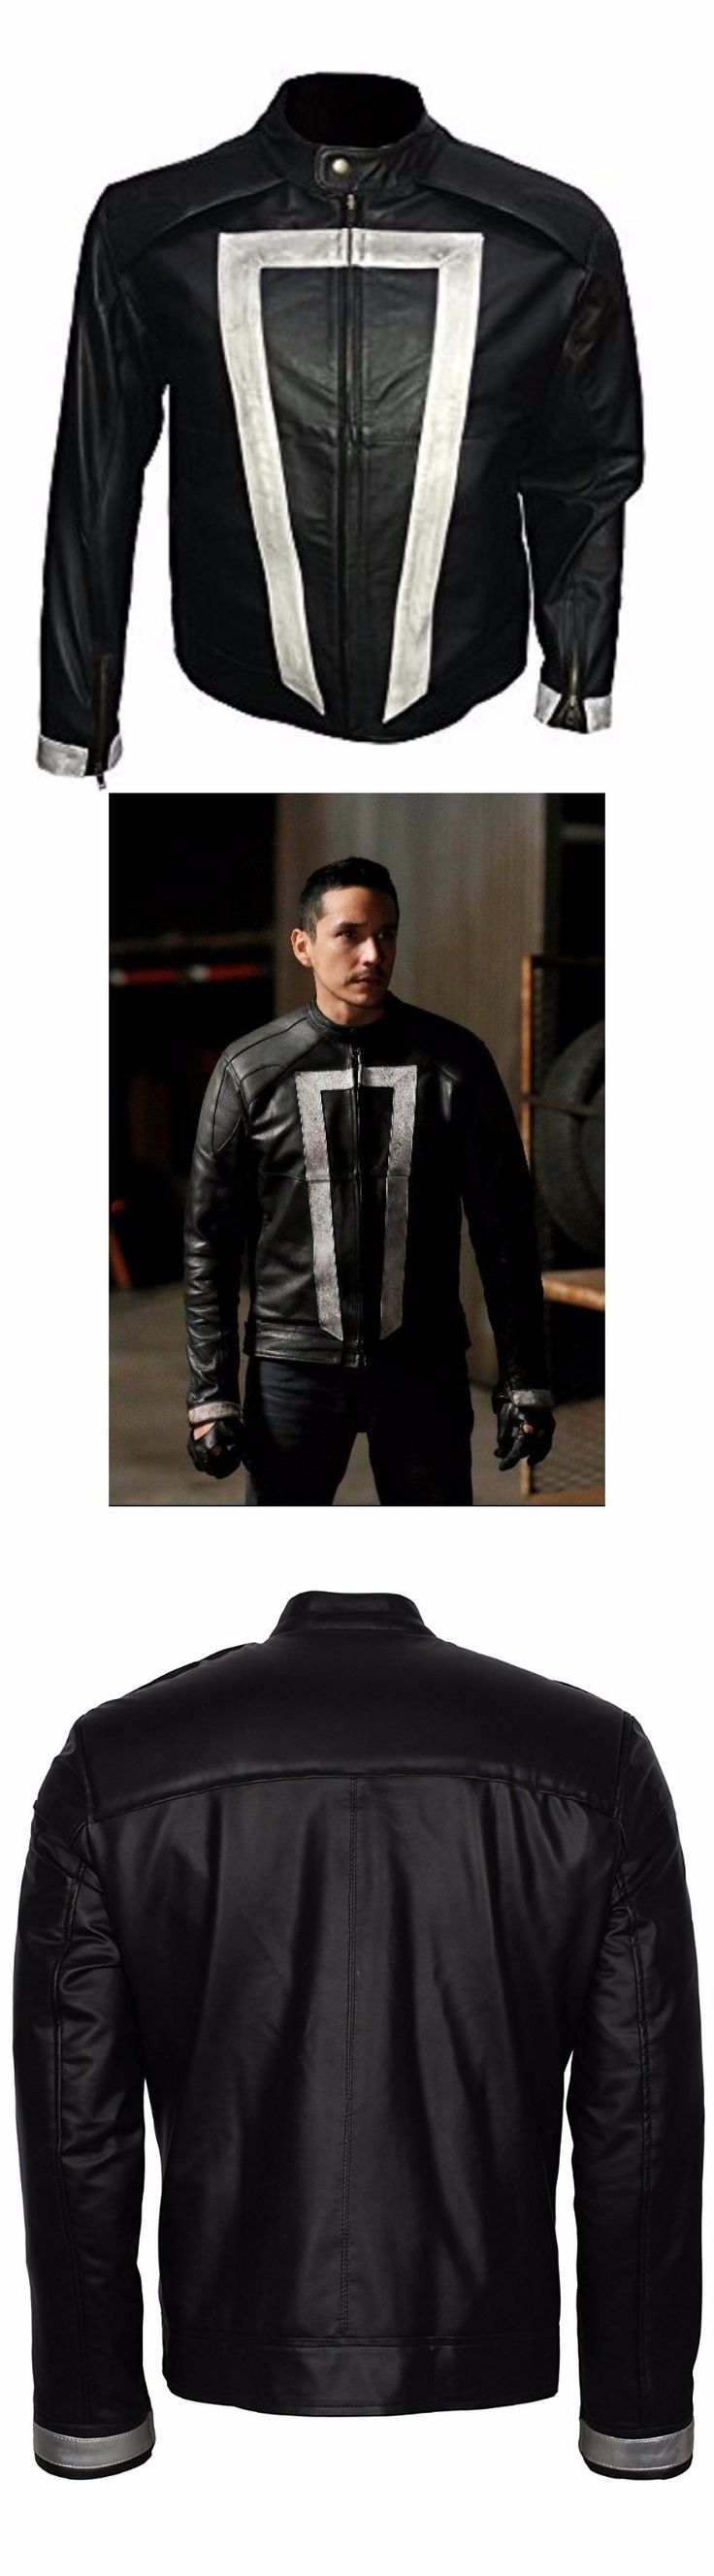 One of the Best Selling Jacket Ghost Rider Agents of Shield is now available in our online store Omu. Get this jacket now and give beautiful Christmas present to your love one. Hurry Up!!!! Place your order now and get discount.